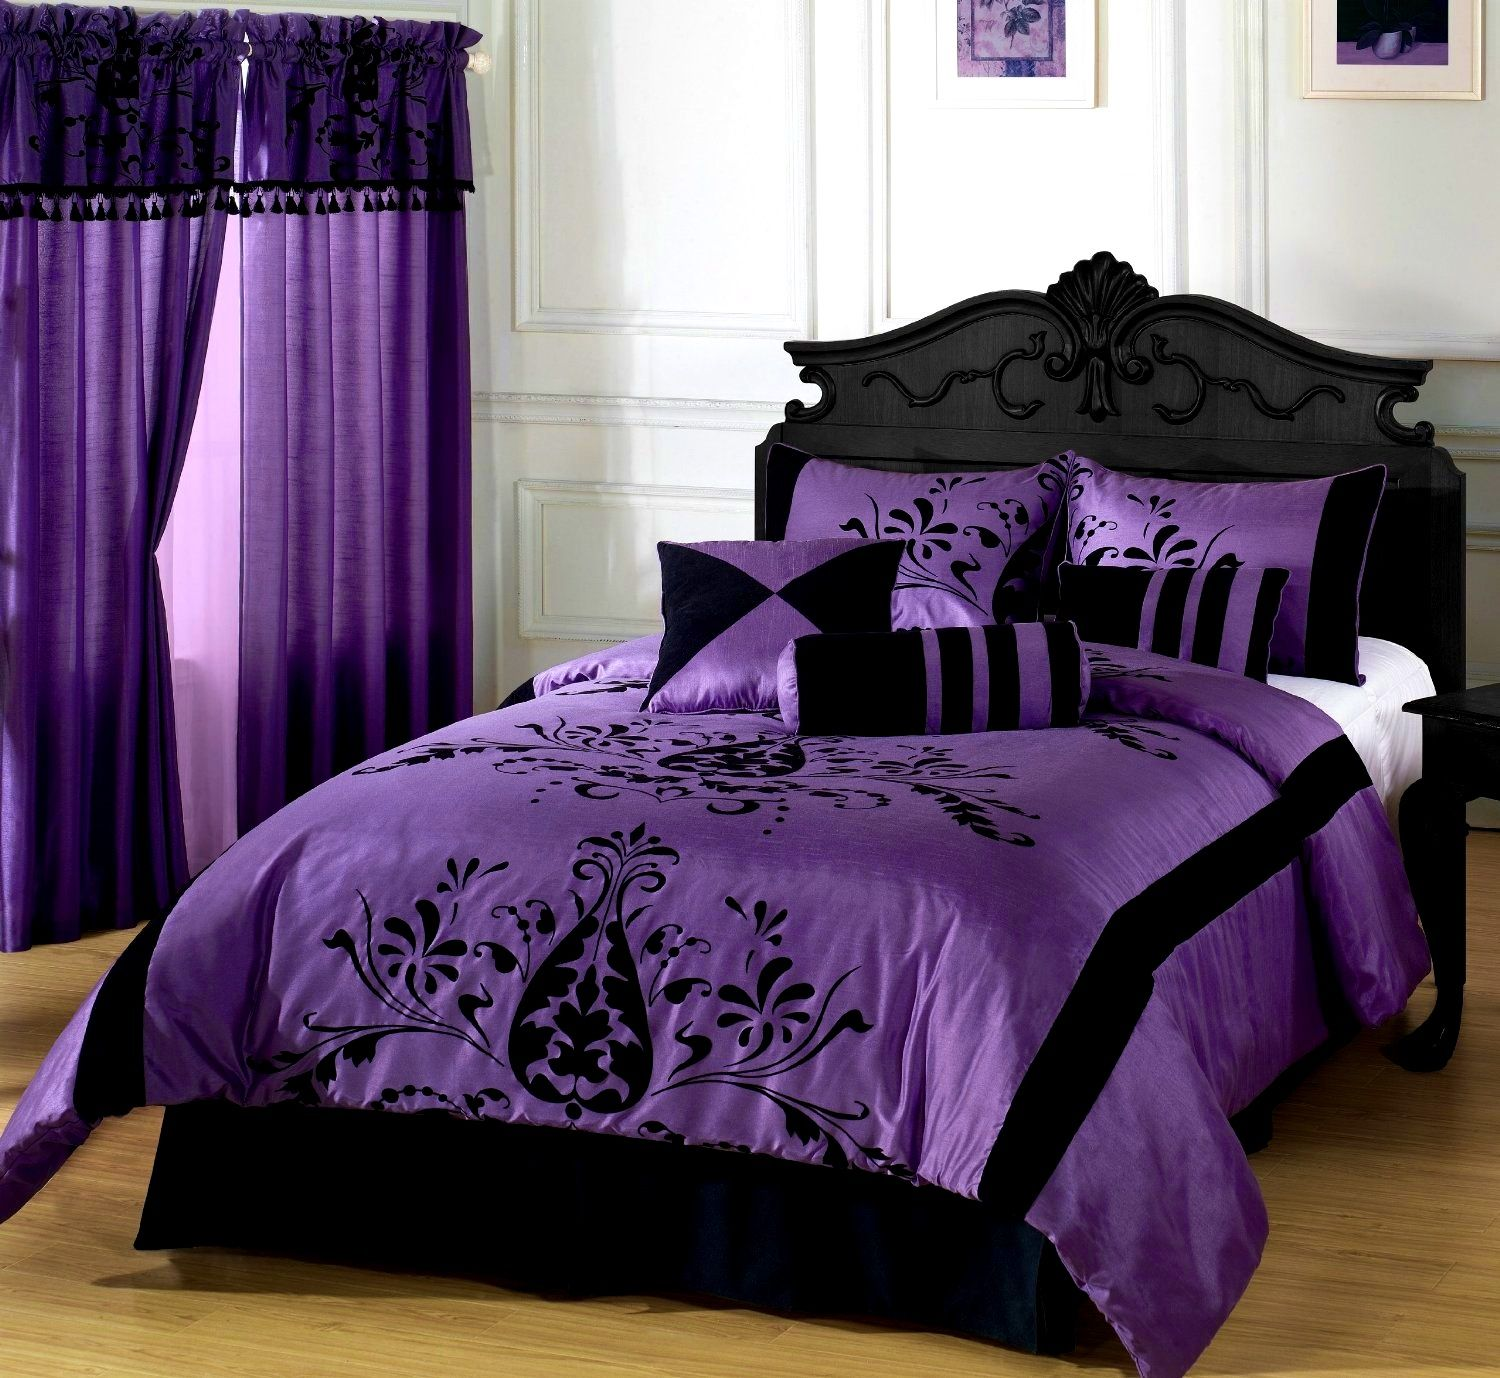 Bedroom:Captivating Gothic Bedrooms Purple And Black Media